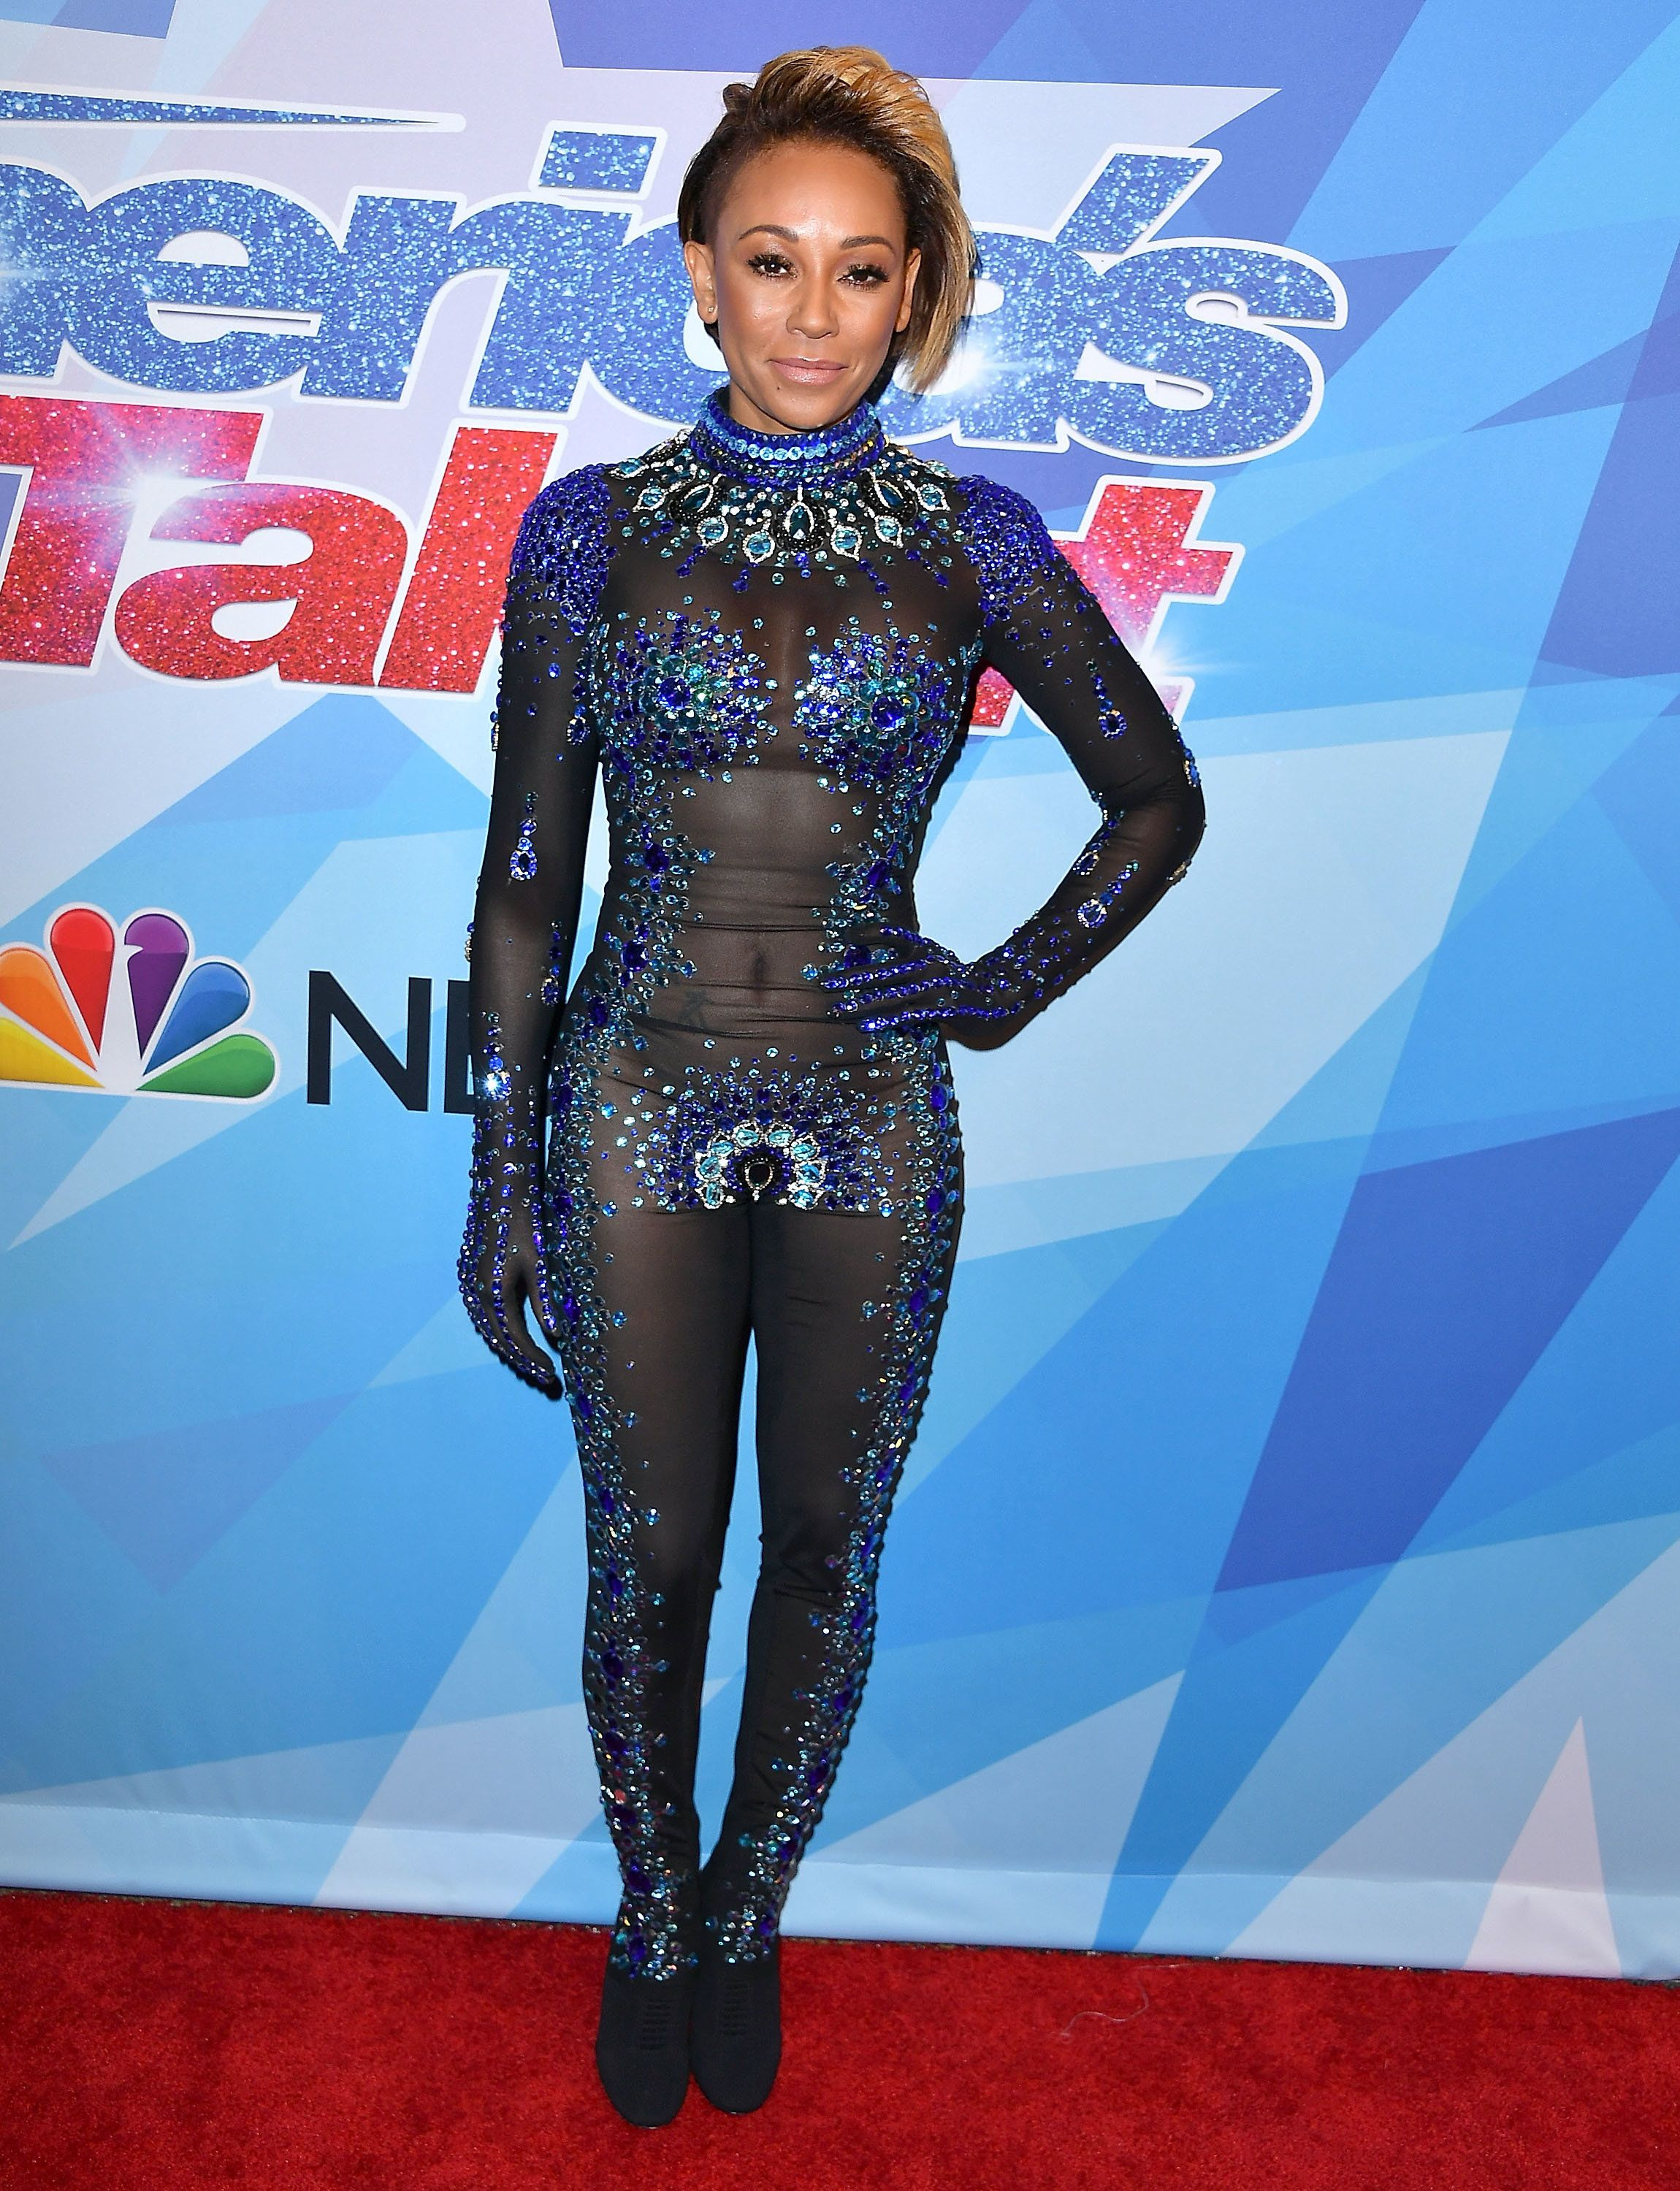 Mel B Gives Us Marvel Vibes In Her Nearly-Naked Get-Up On 'America's Got